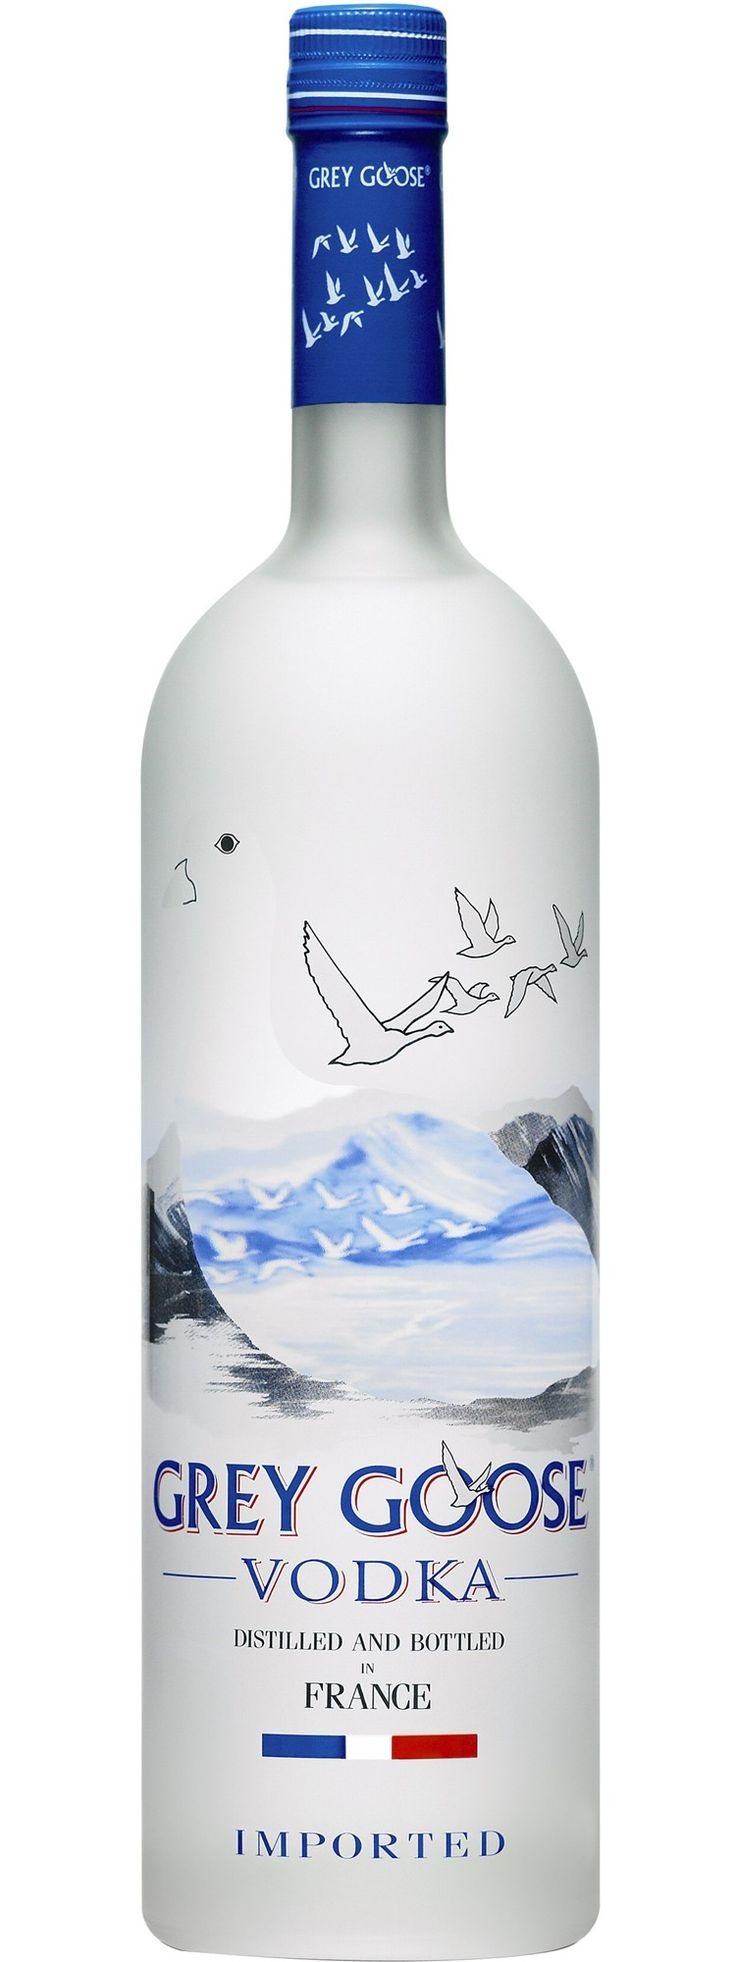 Grey Goose Vodka.GREY GOOSE is the name that has become synonymous with quality vodka..  spiritedgifts.com